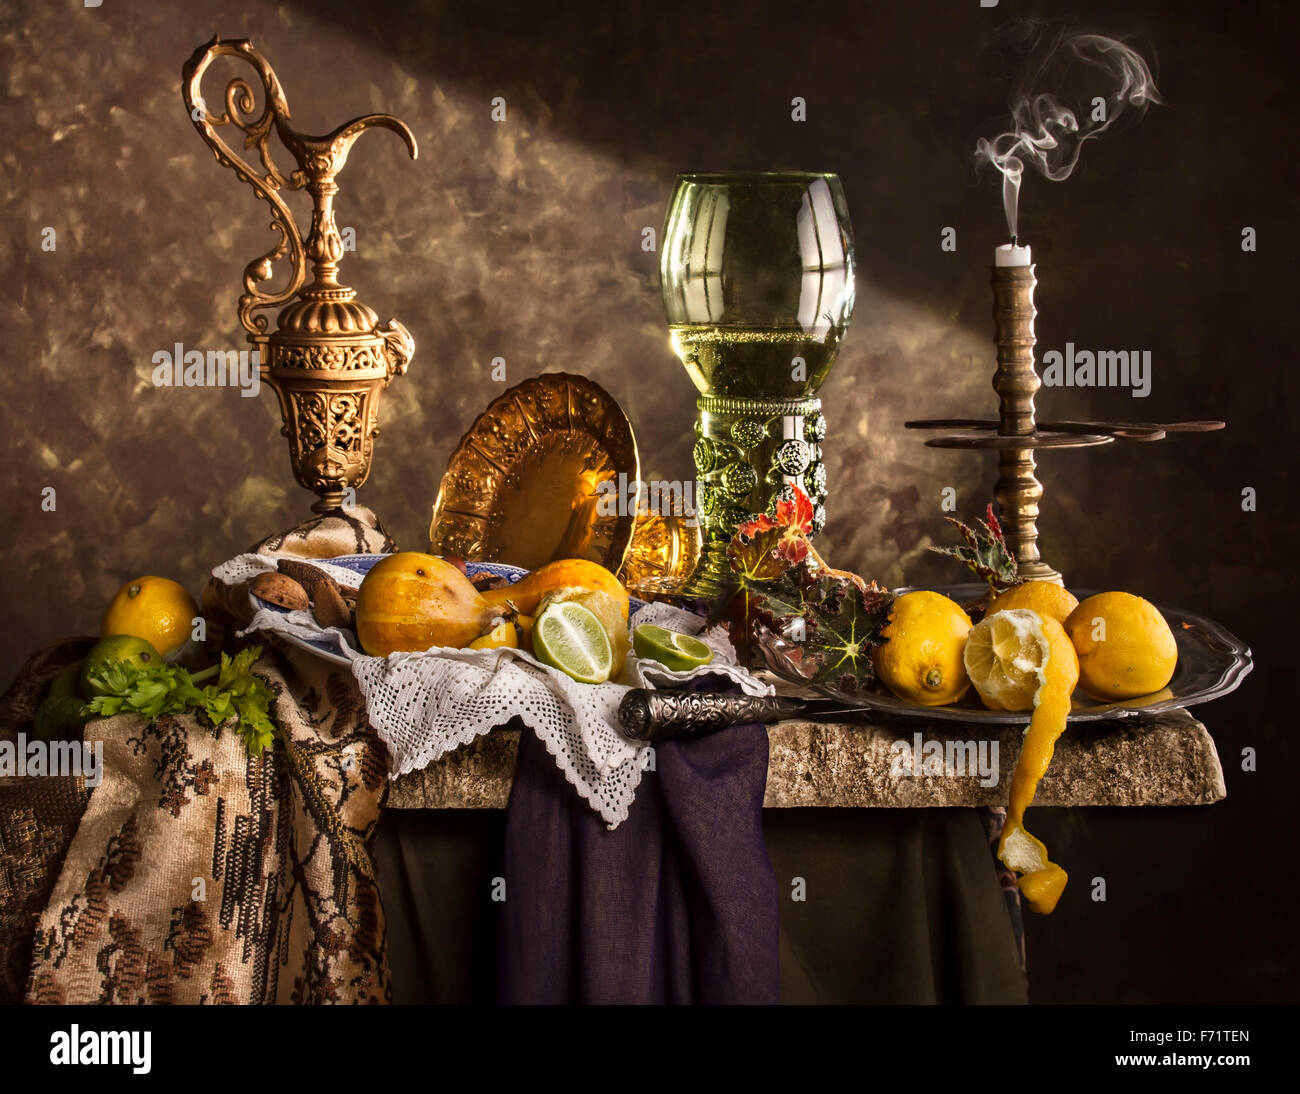 Still life composition with roemer glass and lemons - Stock Image